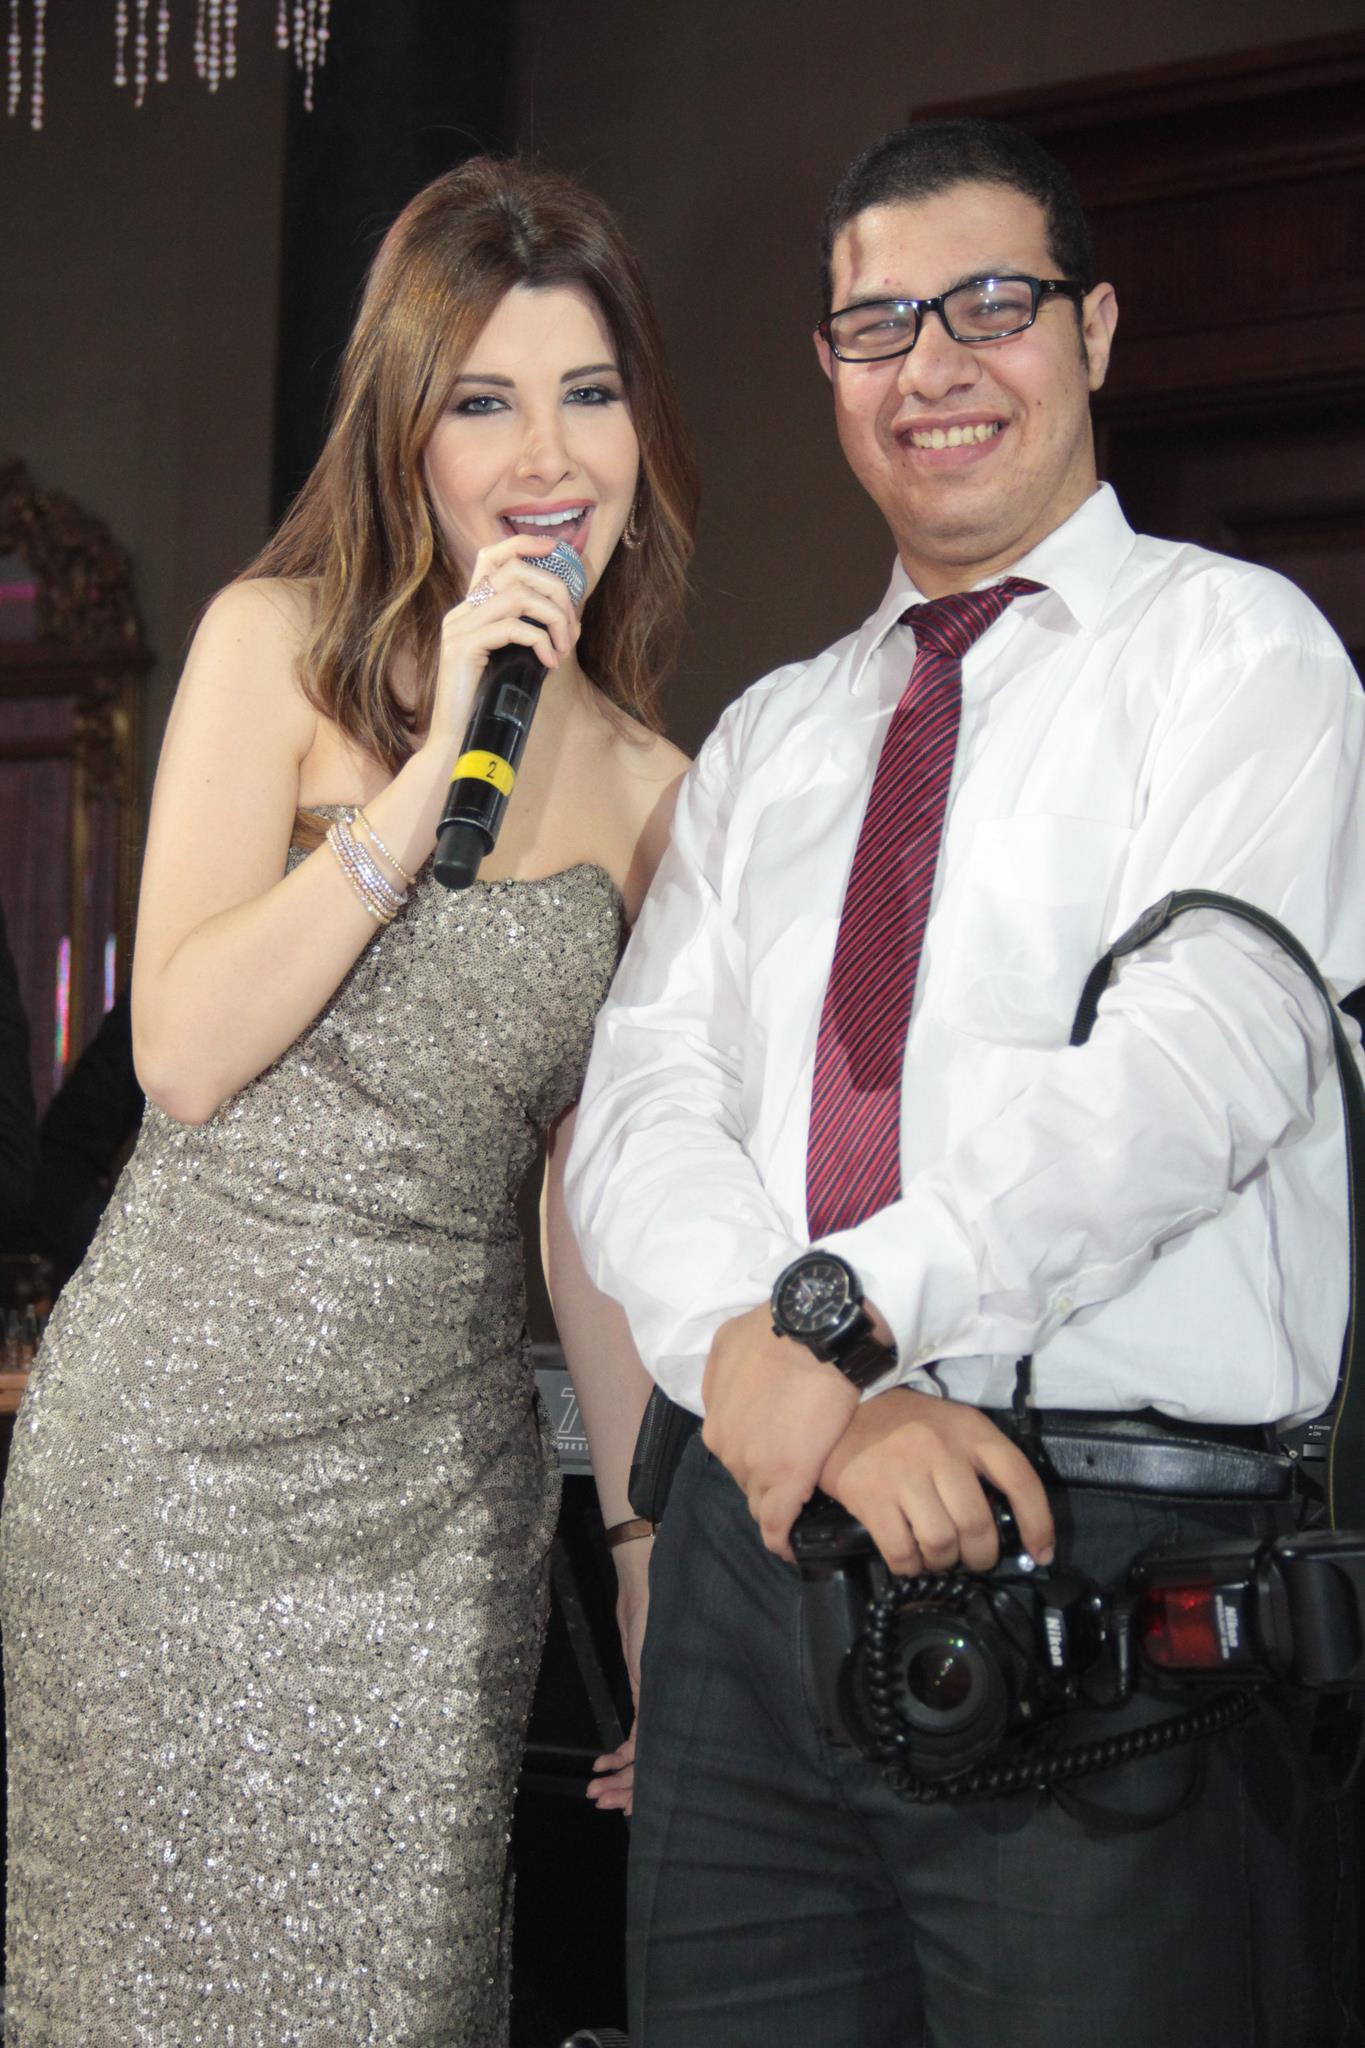 Nancy from Wedding in Cairo - May 10 2013